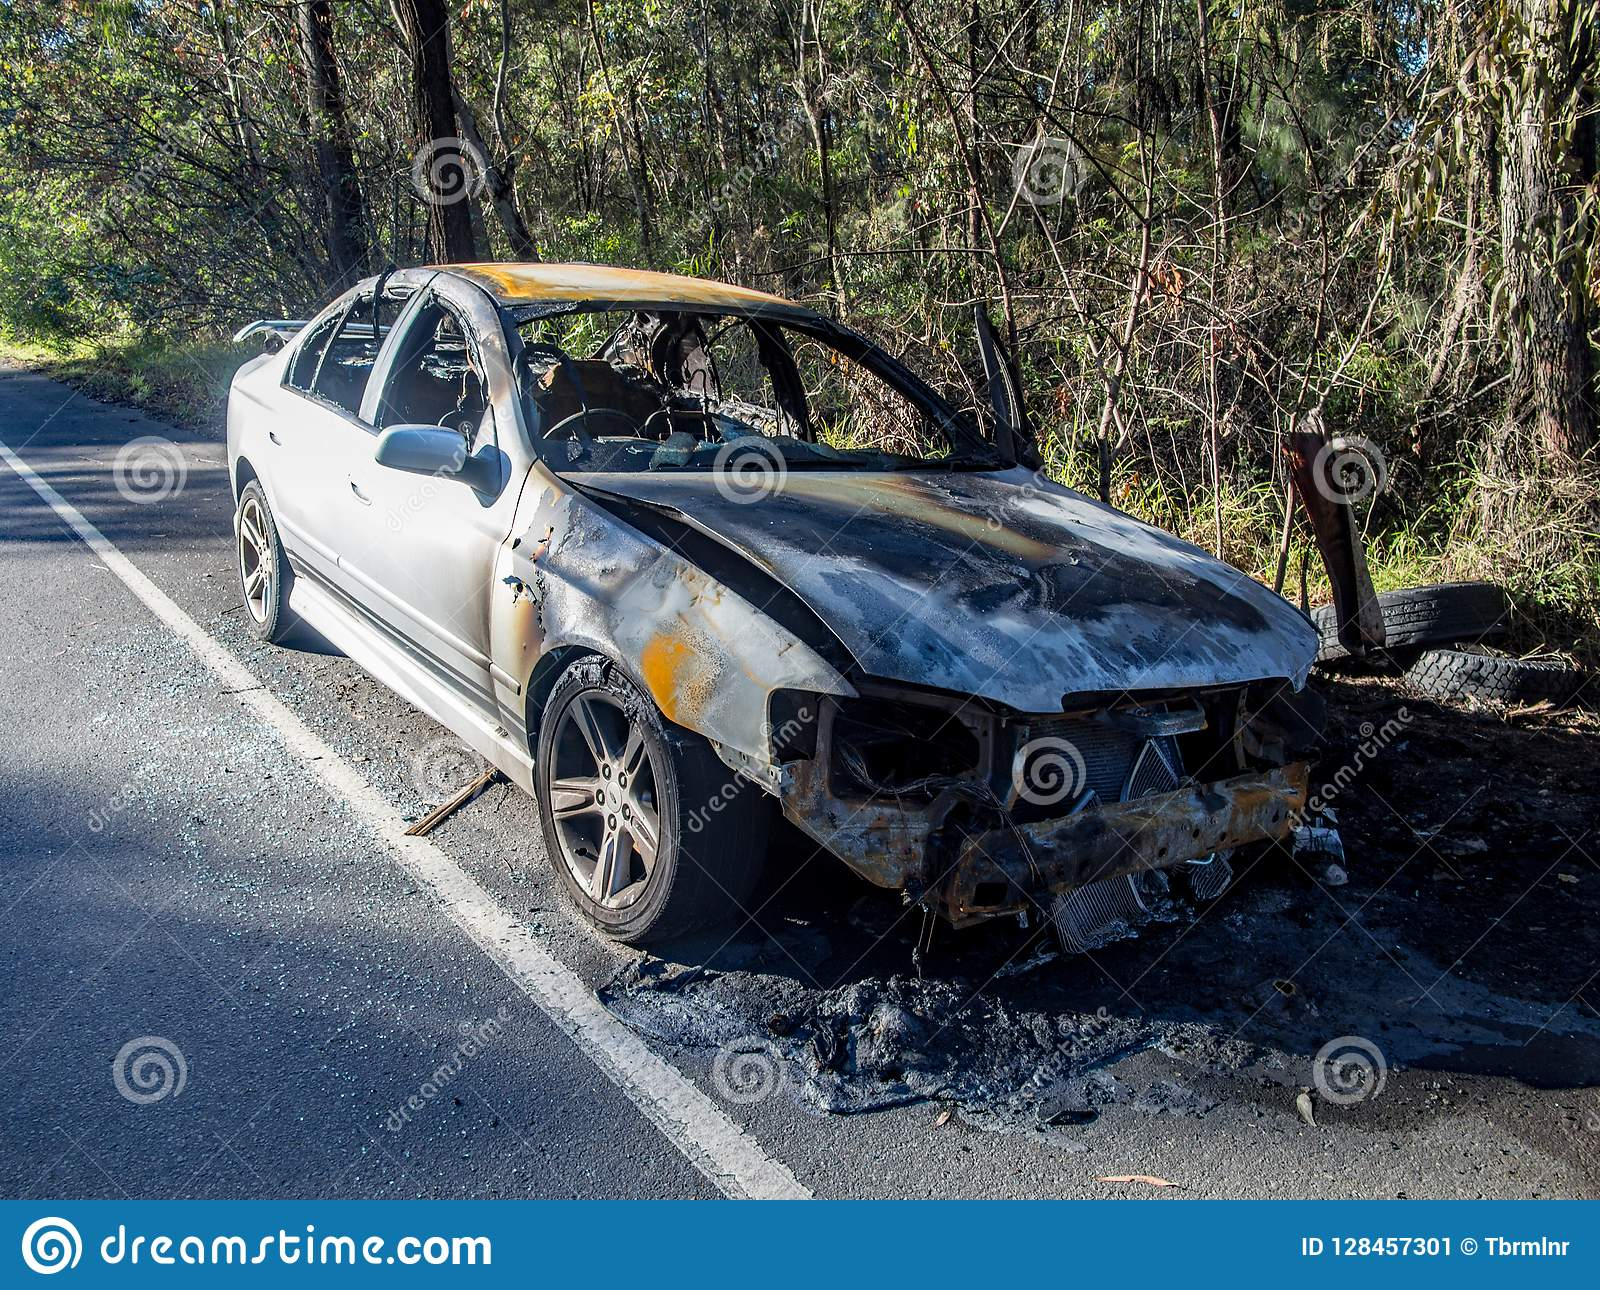 Abandoned Burnt Out Car At The Road Side Front Image Stock